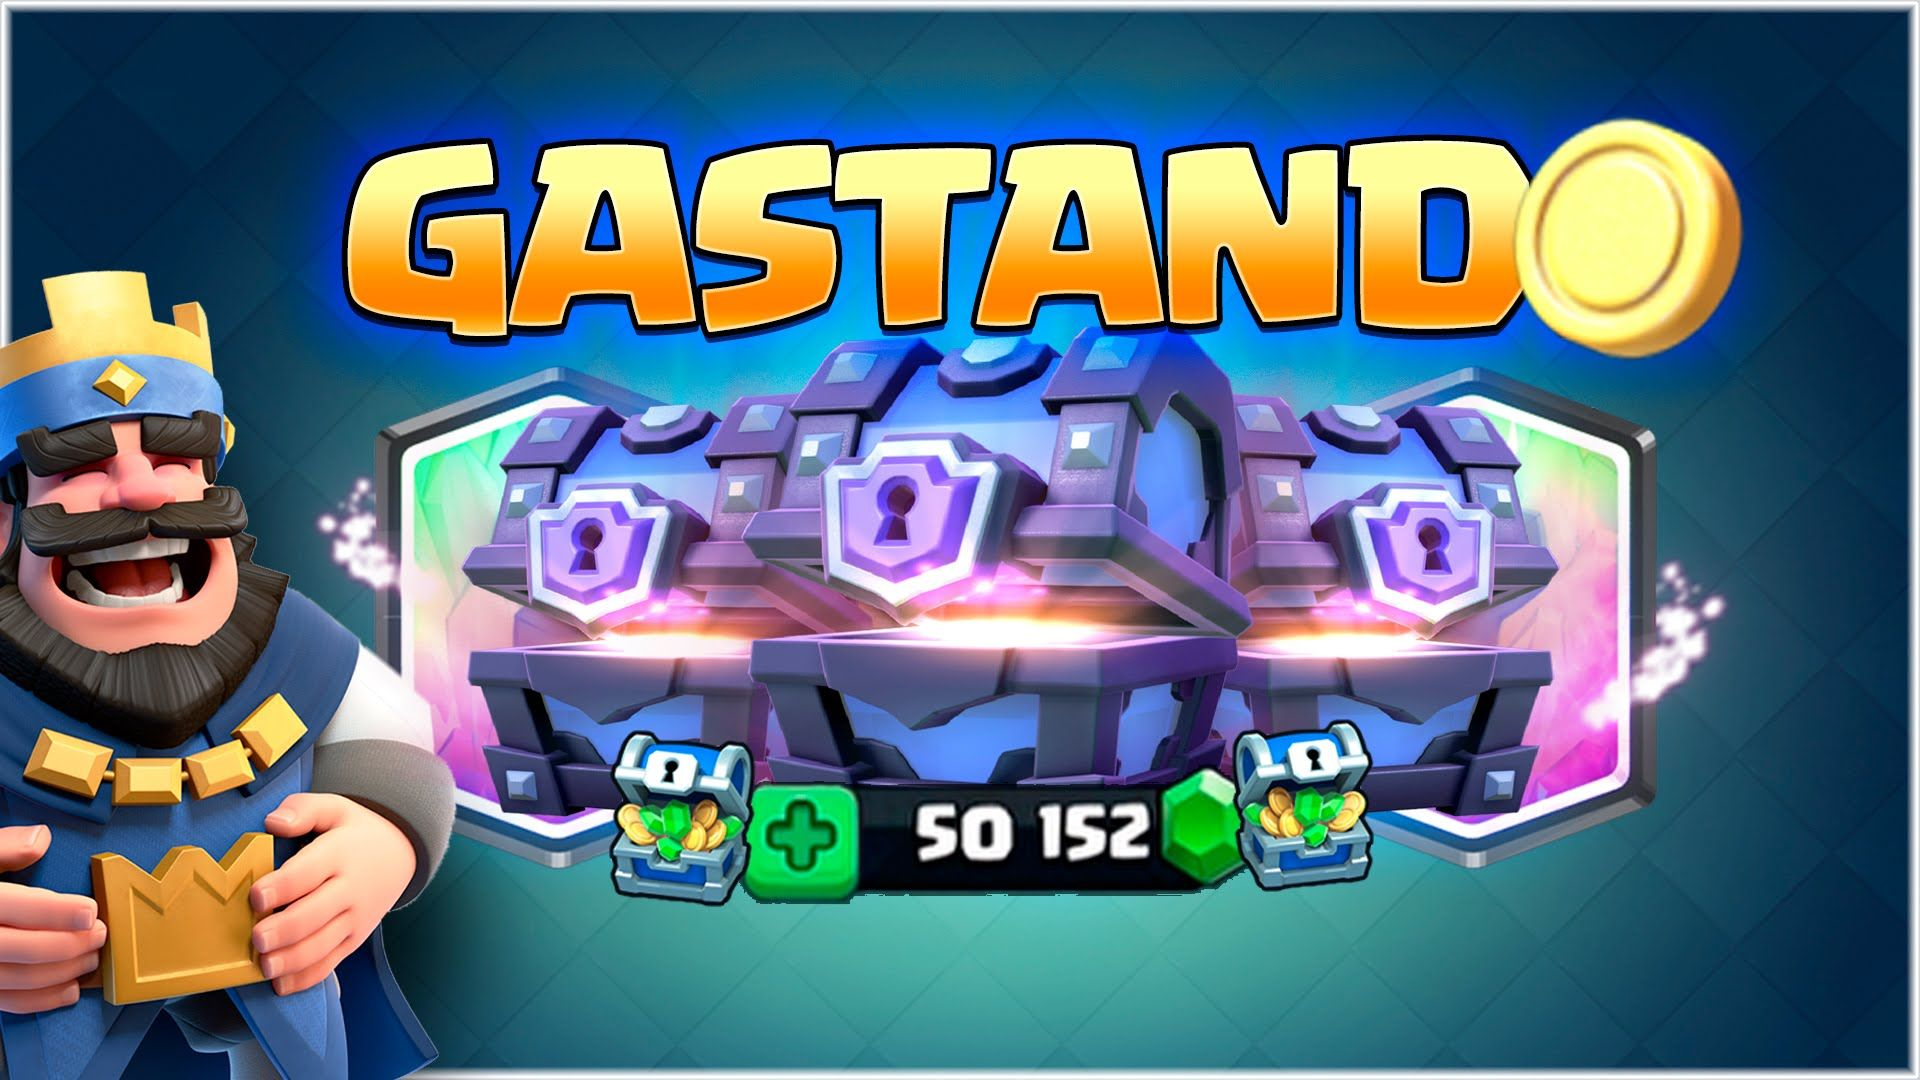 Park Art My WordPress Blog_How To Add Friends On Clash Royale Without Facebook